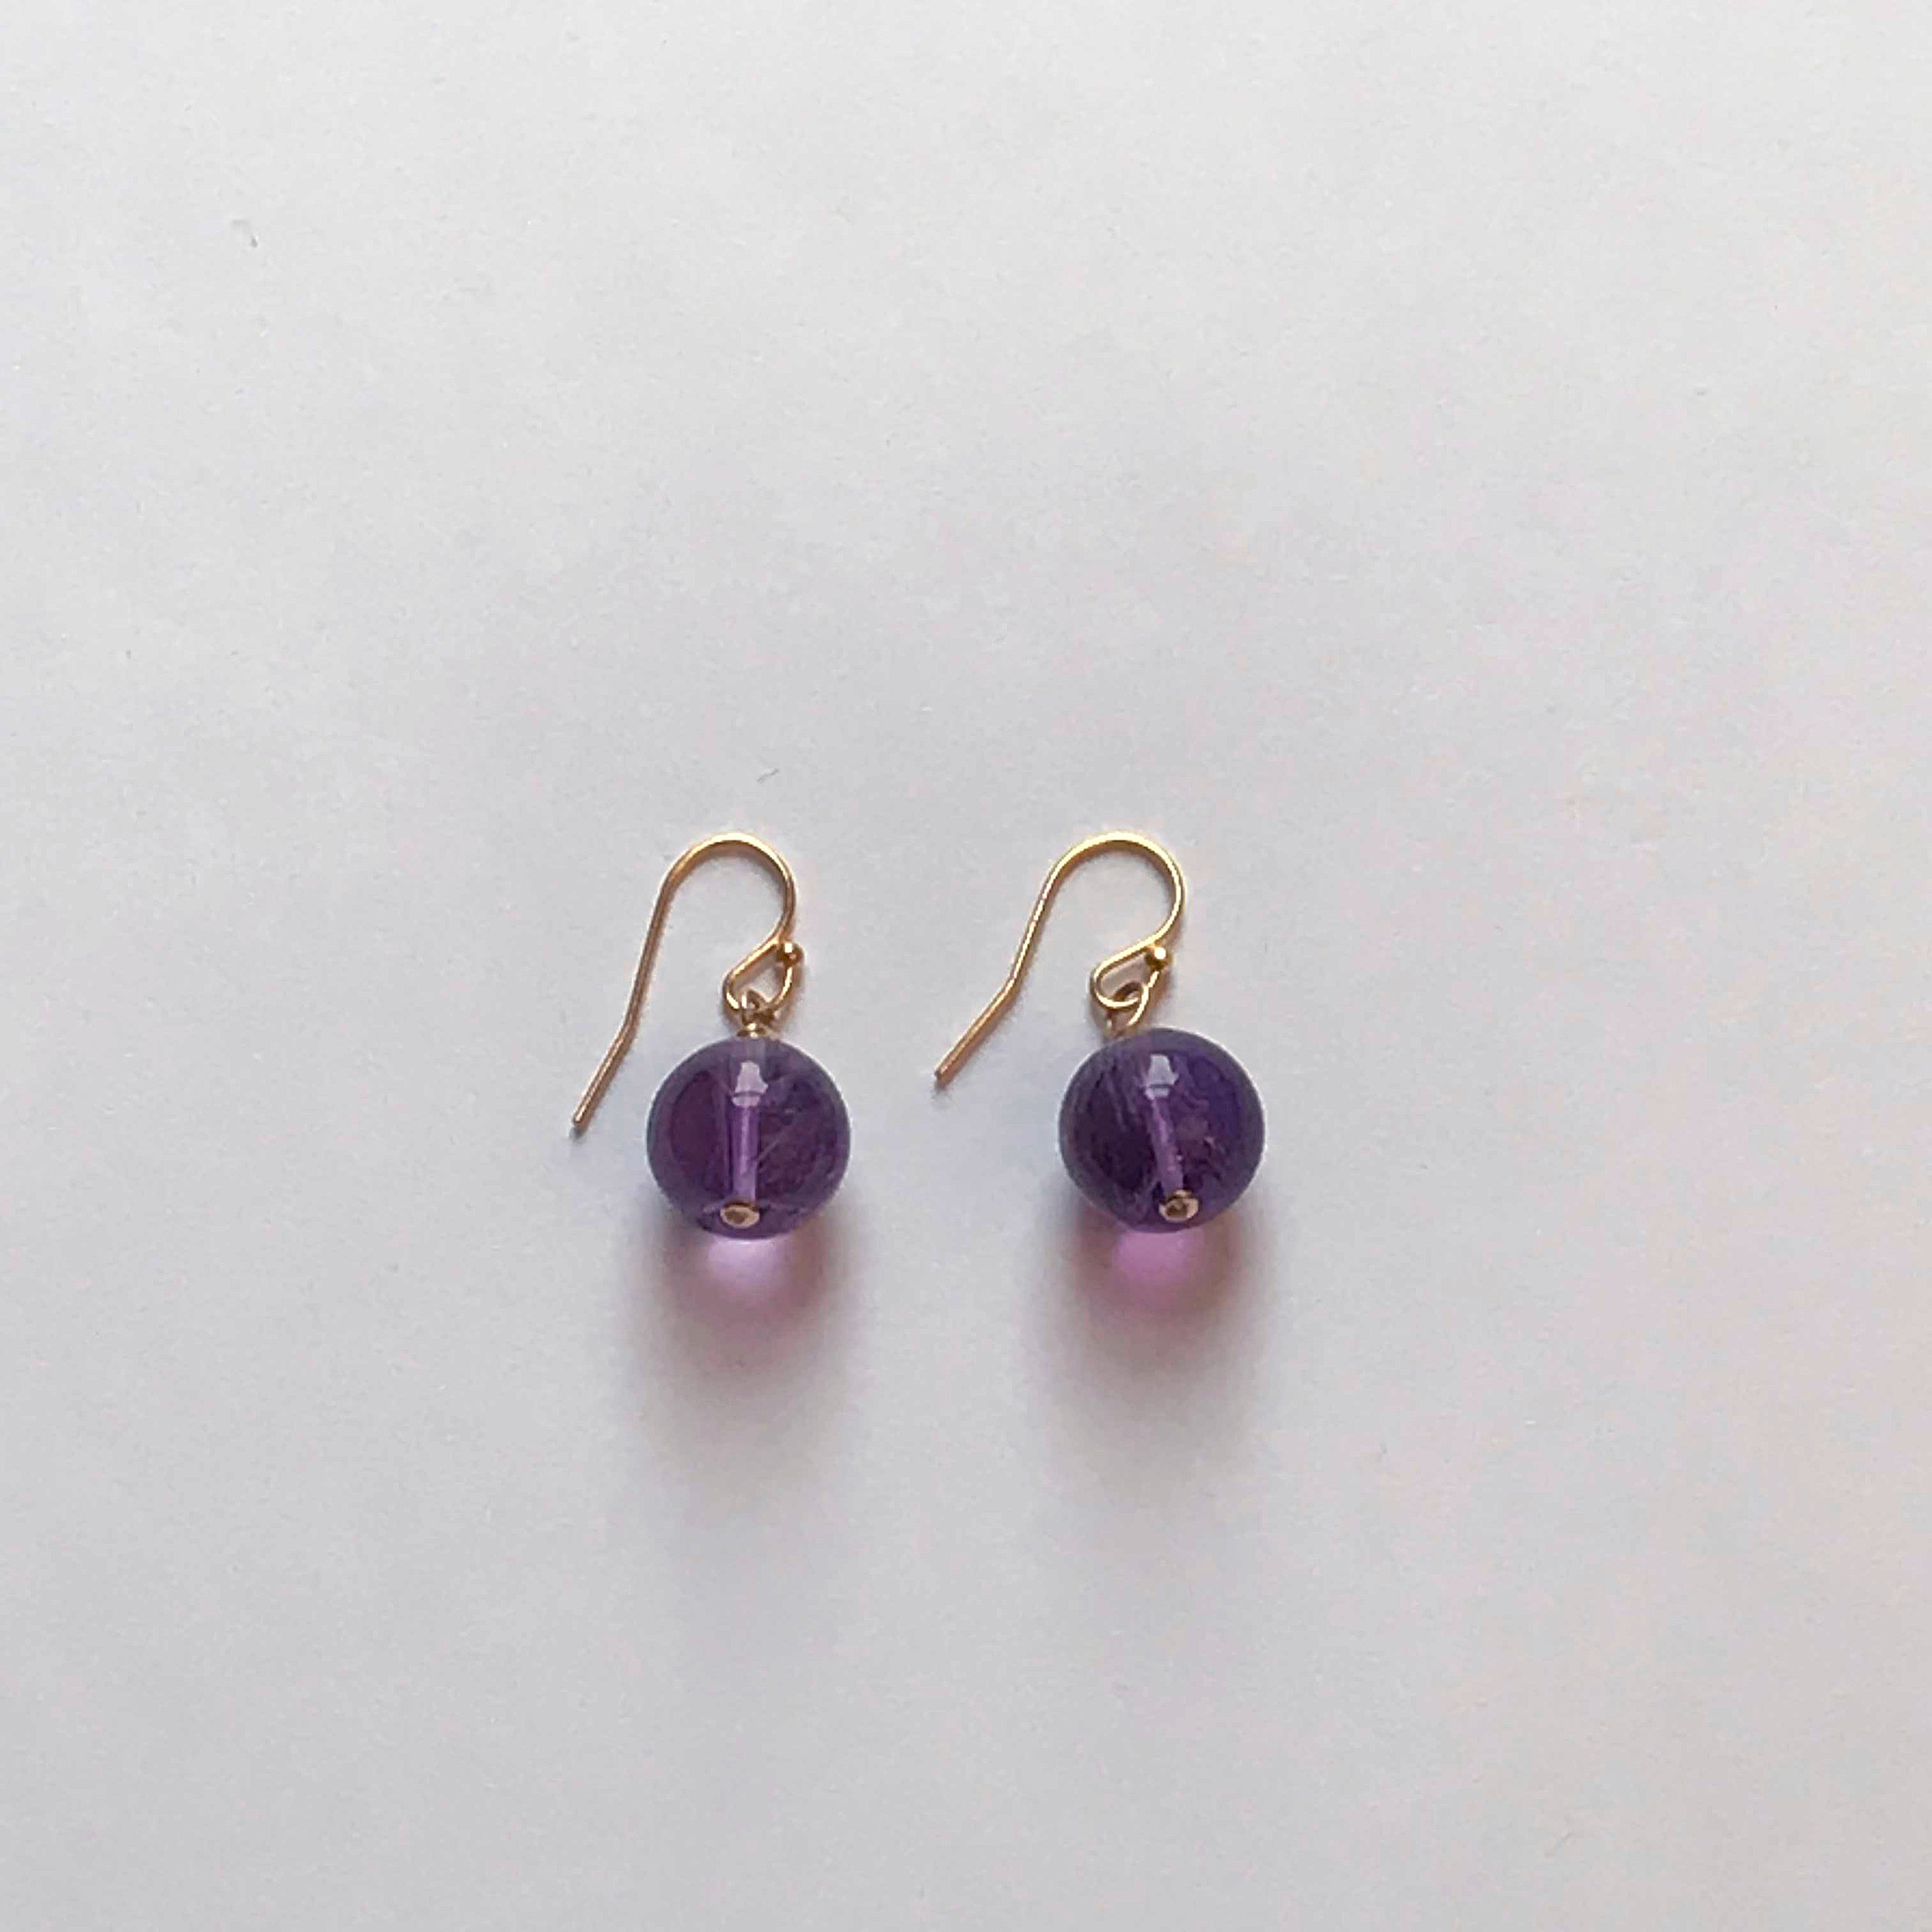 $50 Gold Filled Amethyst Earrings